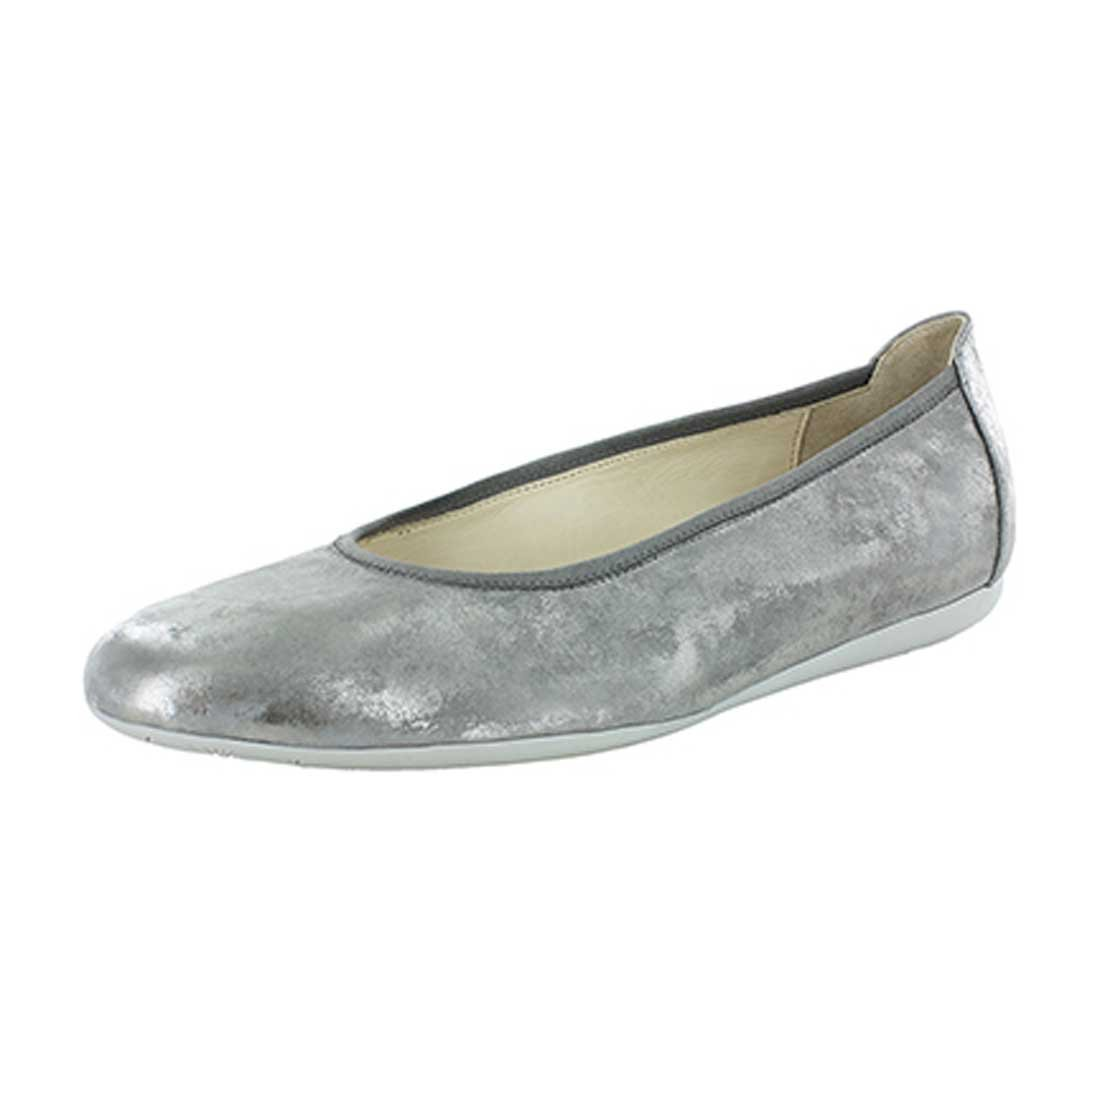 Wolky Comfort Ballet Pumps Tampa B01LXAMLII 43 M EU|Amalia Light Gray